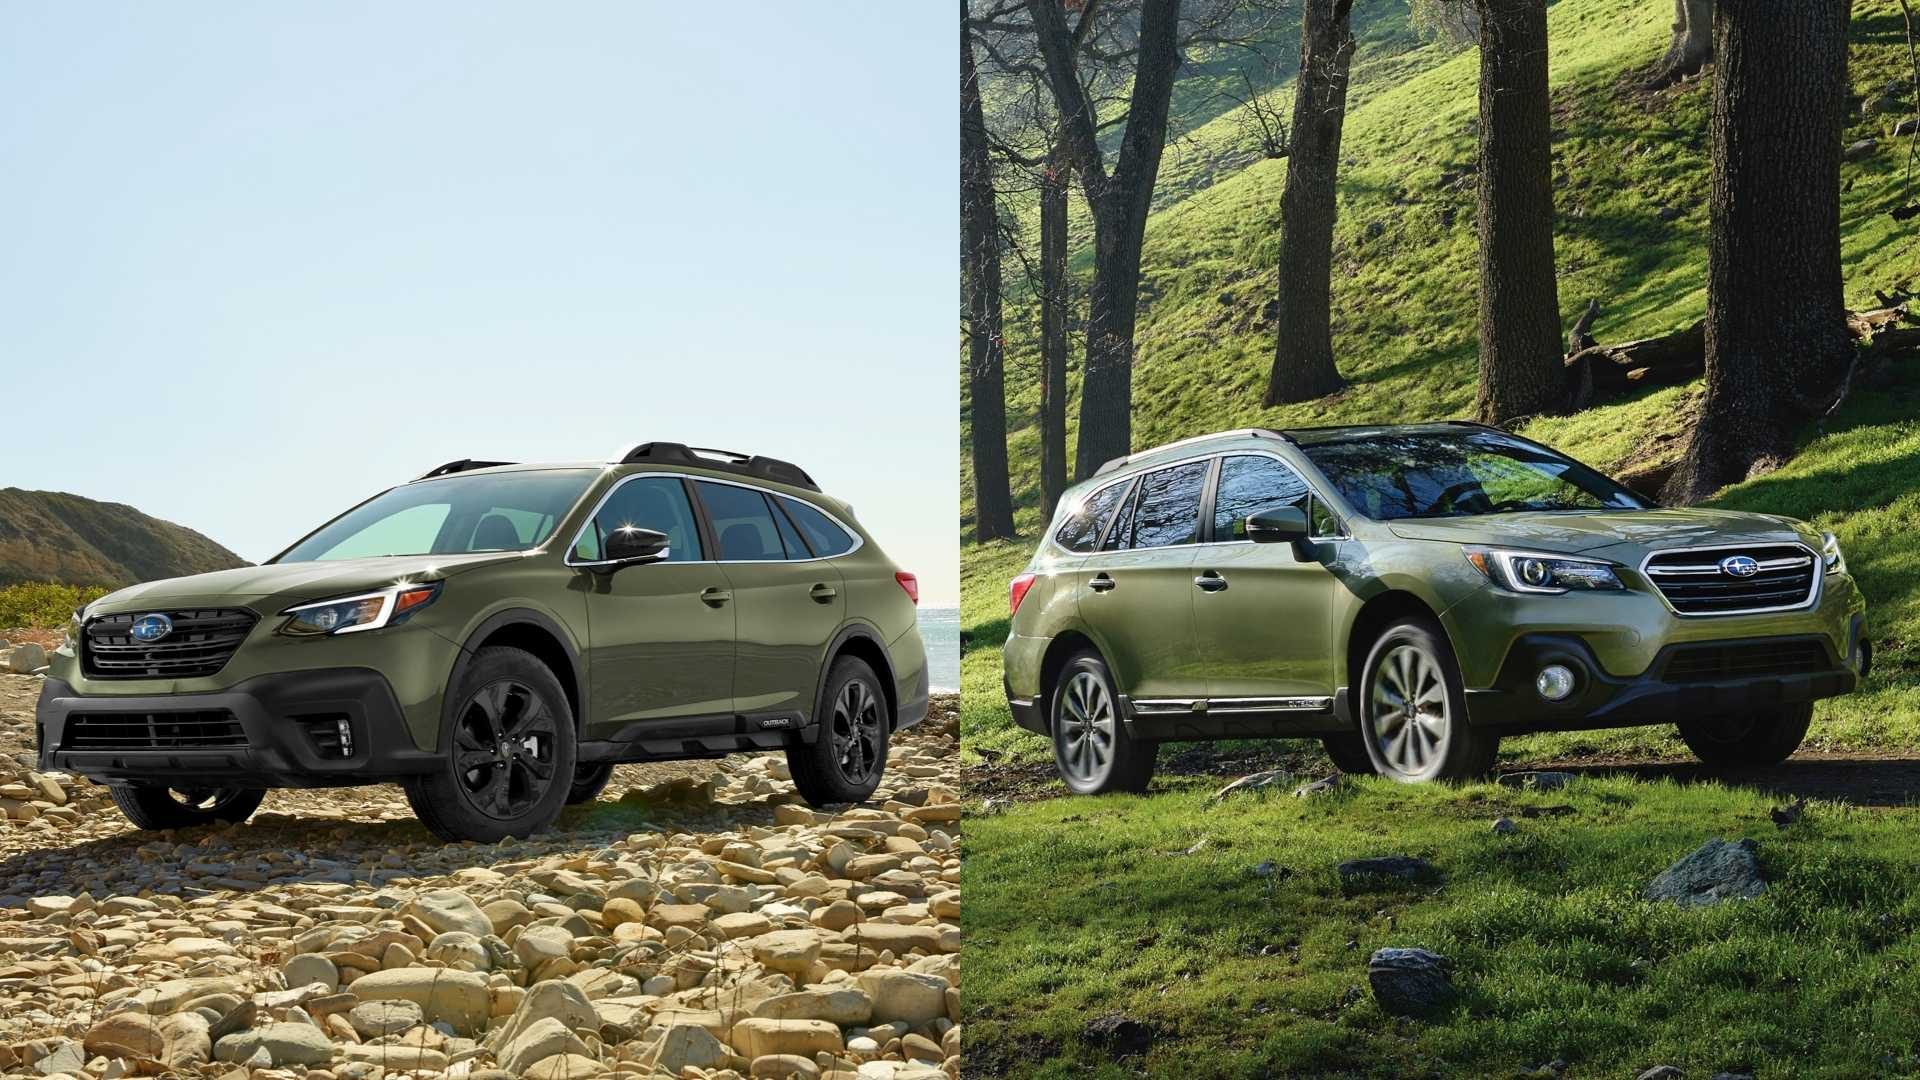 2020 Subaru Outback: See The Changes Sideside - 2022 Subaru Outback Cargo Dimensions, Premier Color, Interior